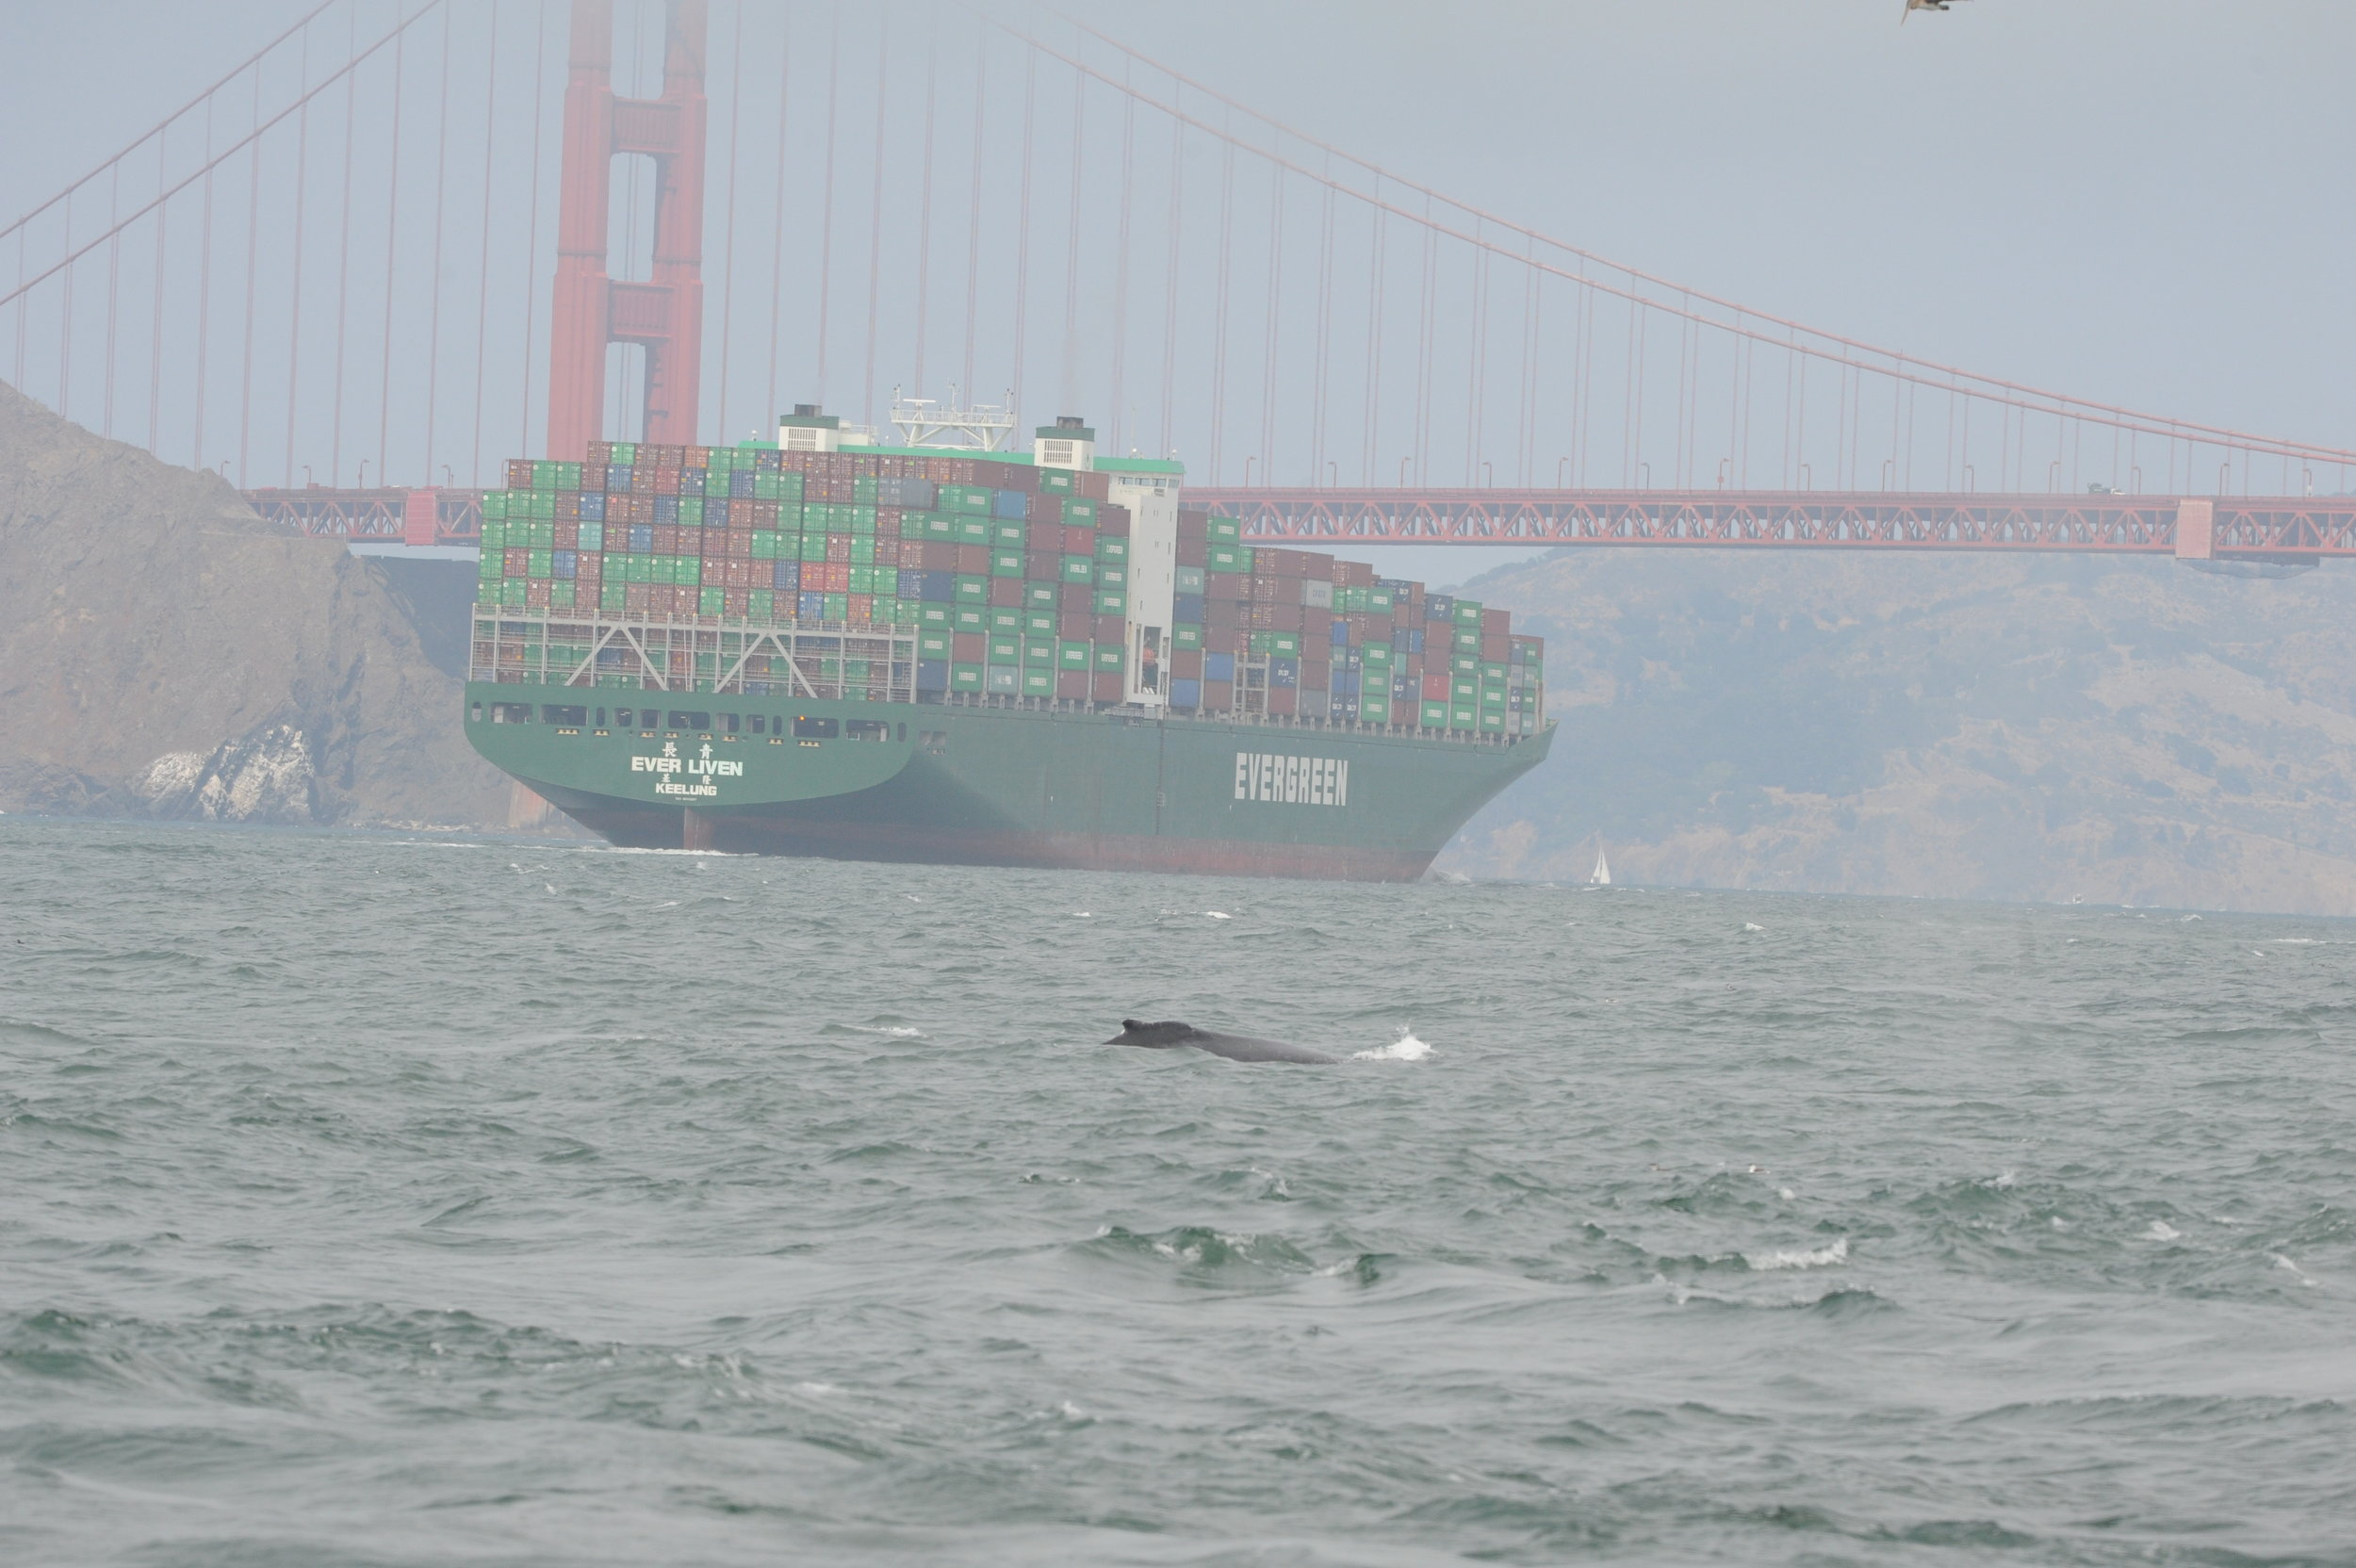 Humpback in between us and a large container ship.